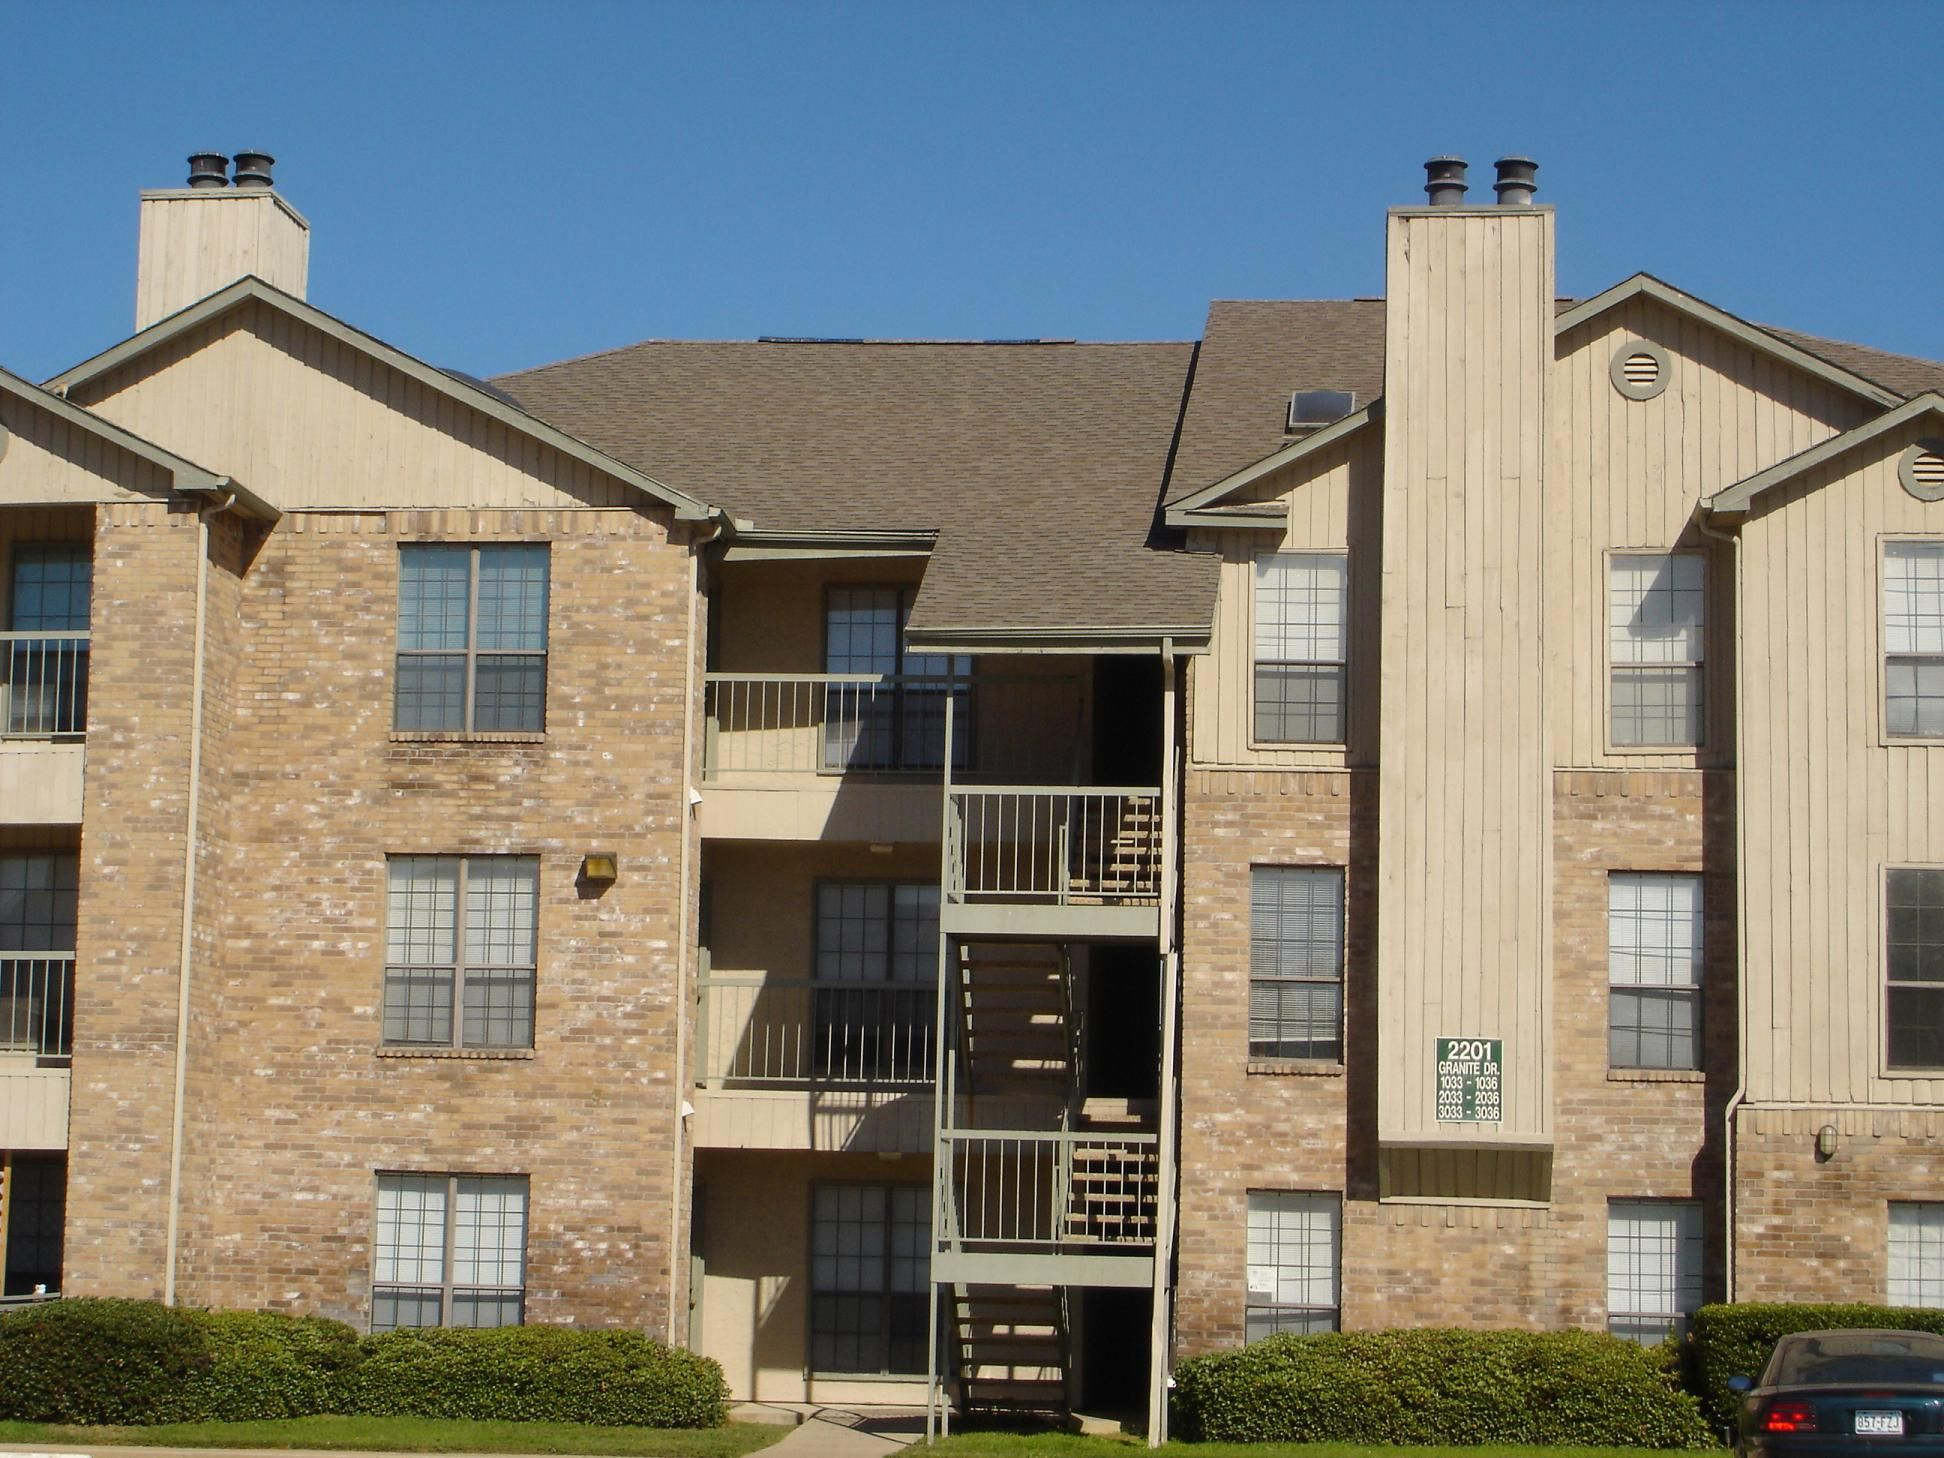 Apartment Building Owners Need Several Business Insurance Policies